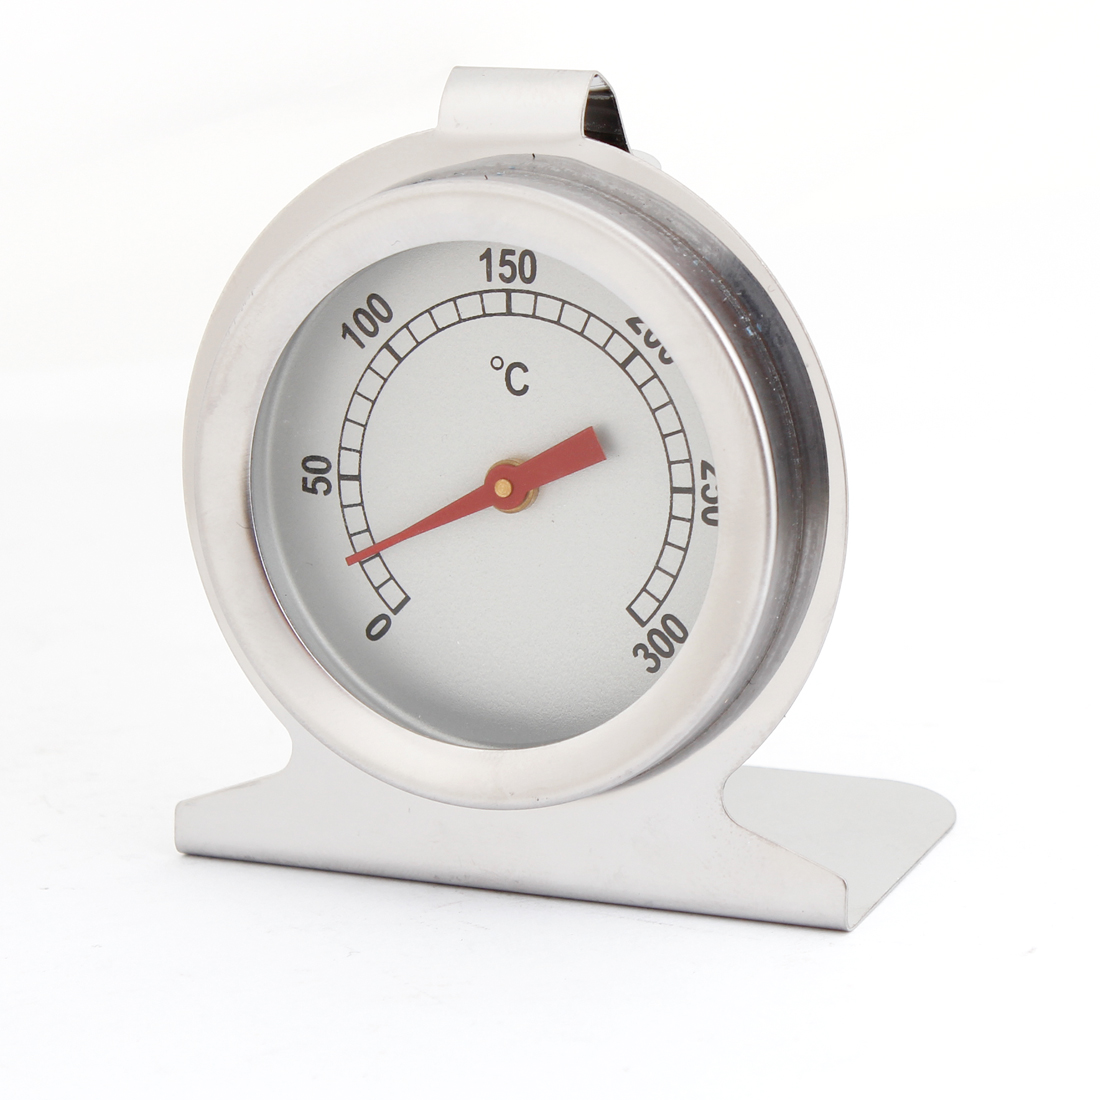 Stainless Steel Stand up Food Meat Rounded Dial Oven Thermometer